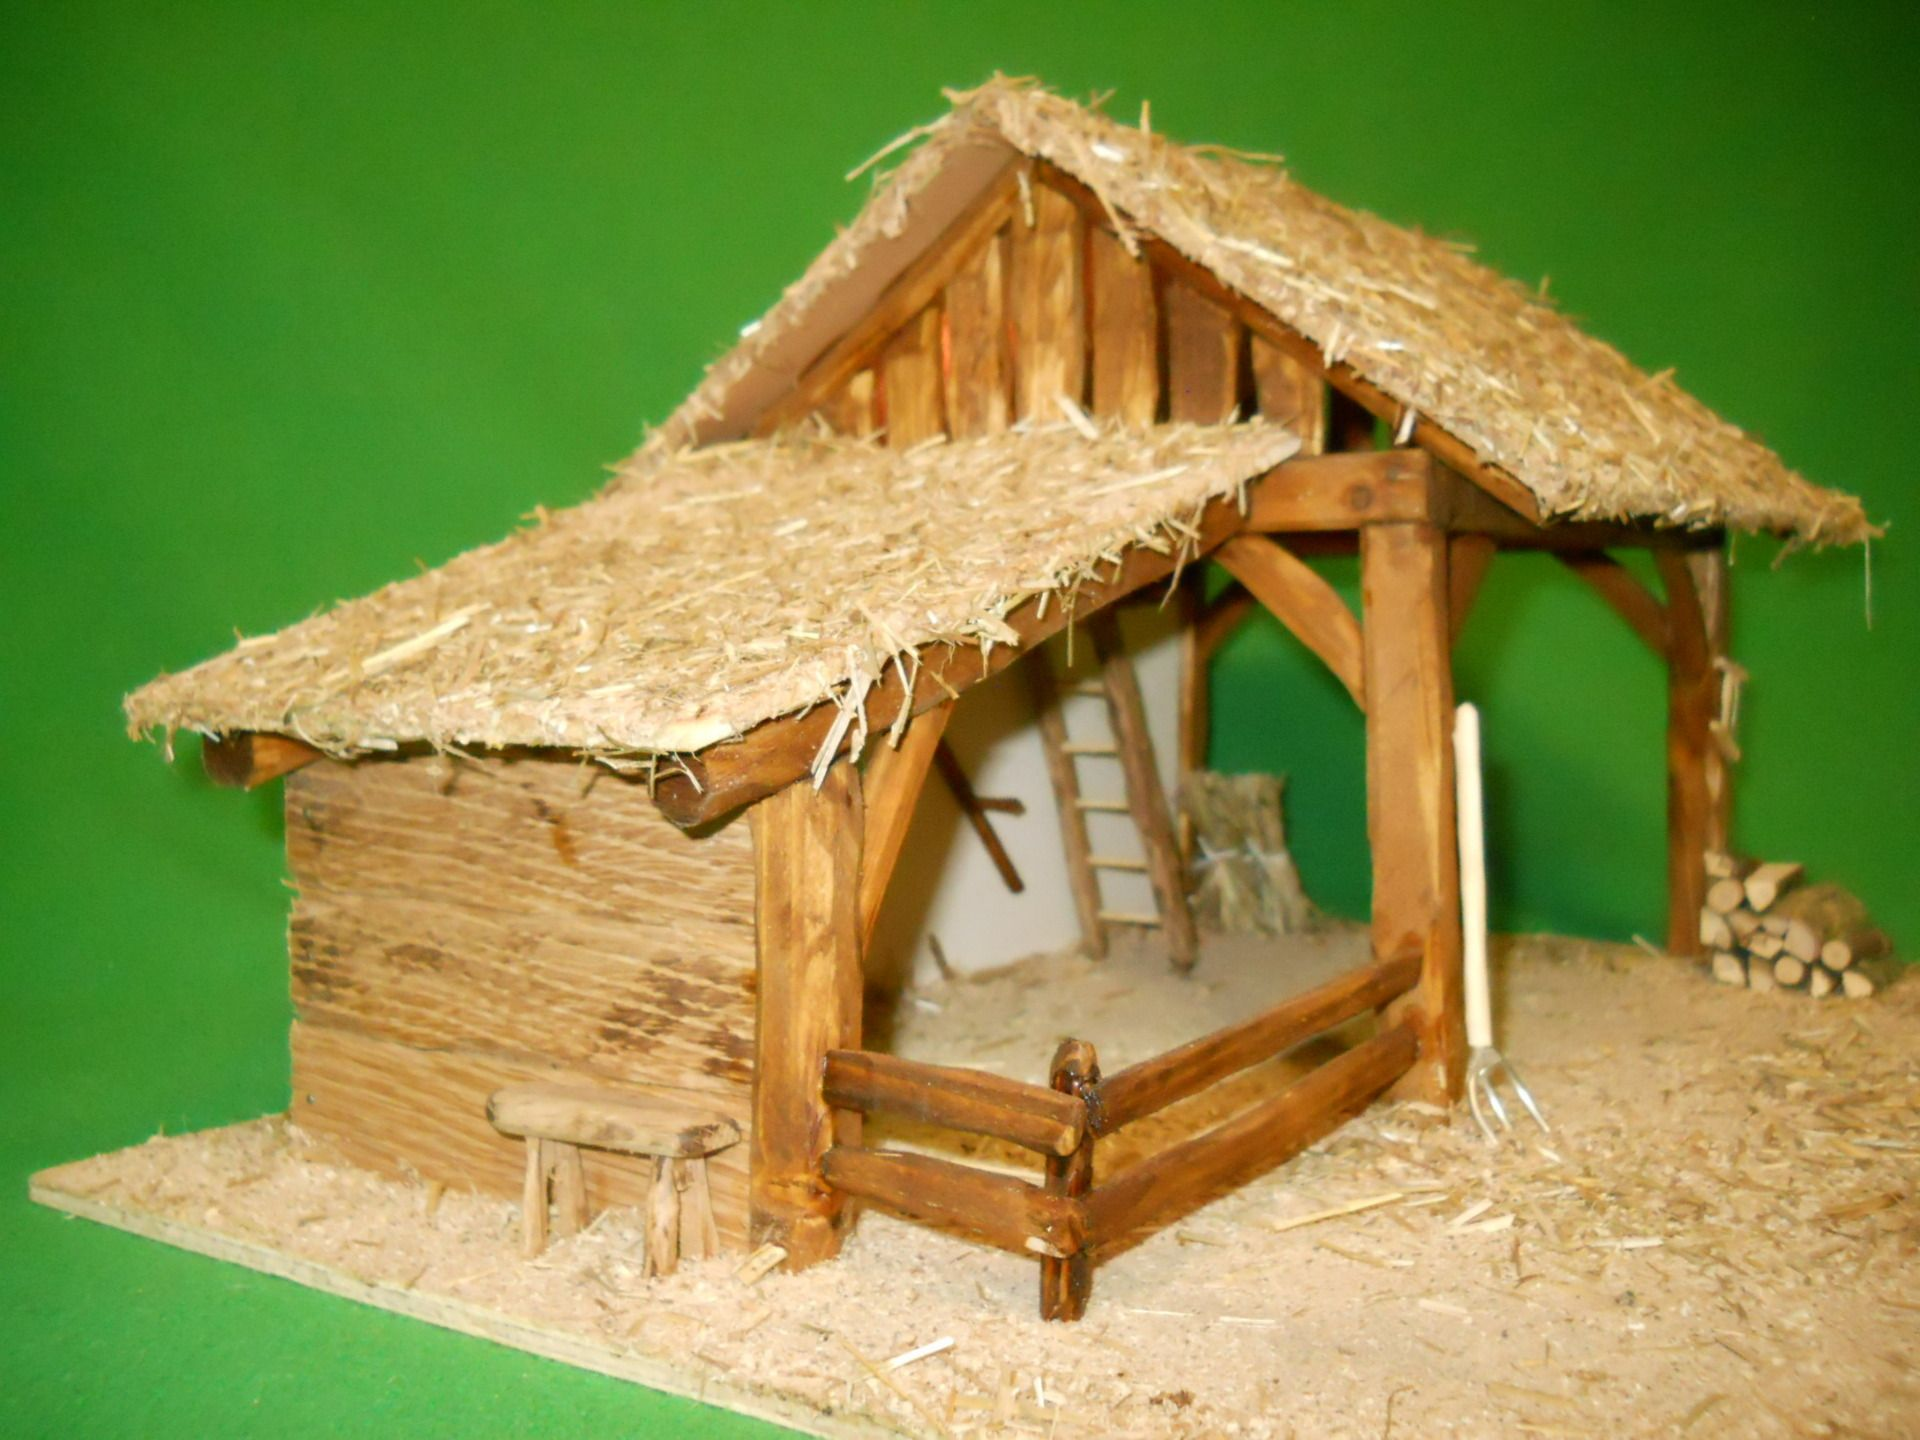 creche de noel en bois pas cher miniature village de no l pinterest cr che de noel cr che. Black Bedroom Furniture Sets. Home Design Ideas